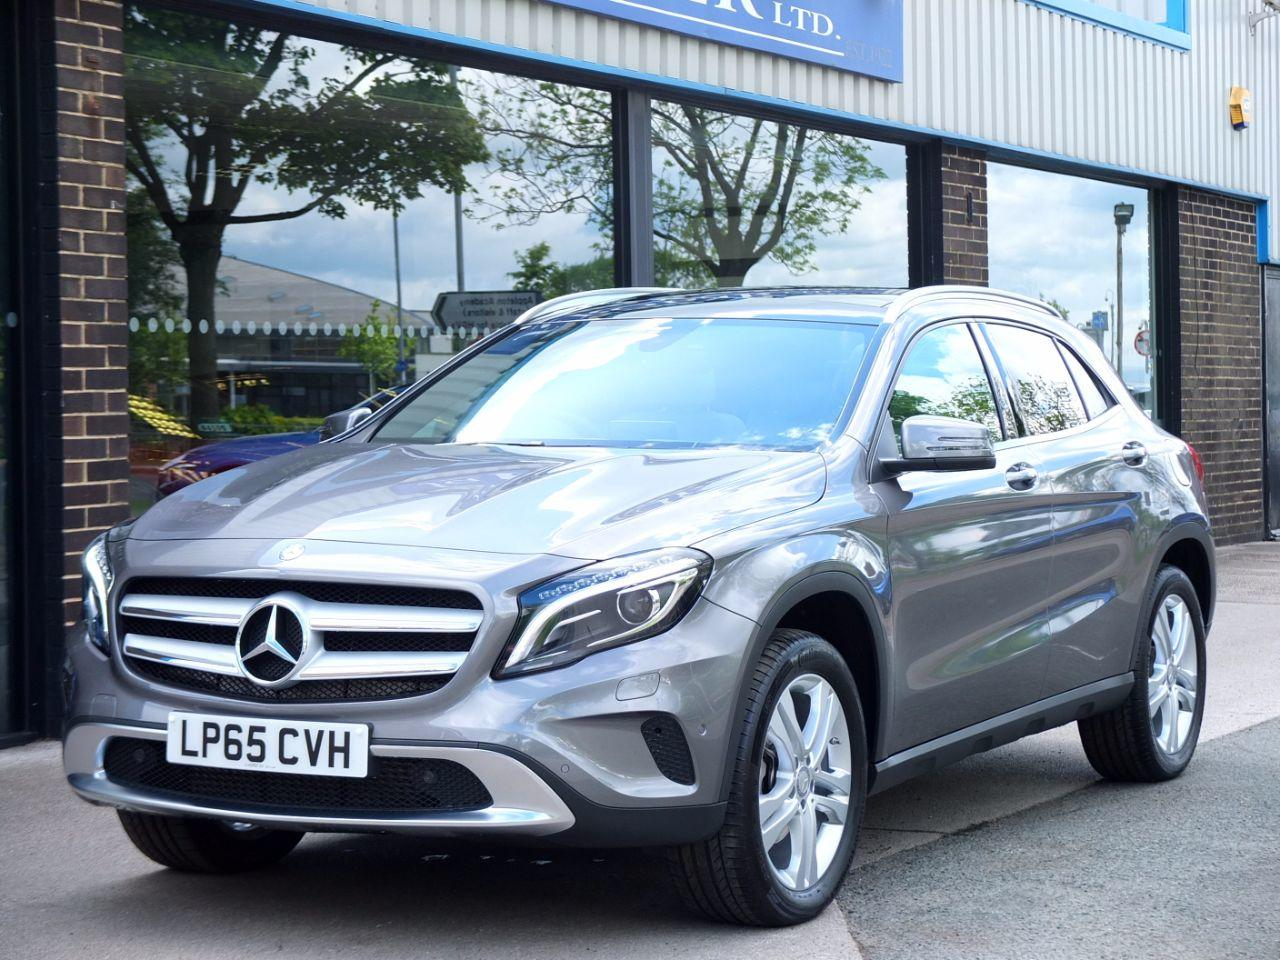 Mercedes-Benz Gla Class 2.1 GLA 220d 4Matic Sport Premium Plus Auto Estate Diesel Mountain Grey MetallicMercedes-Benz Gla Class 2.1 GLA 220d 4Matic Sport Premium Plus Auto Estate Diesel Mountain Grey Metallic at fa Roper Ltd Bradford